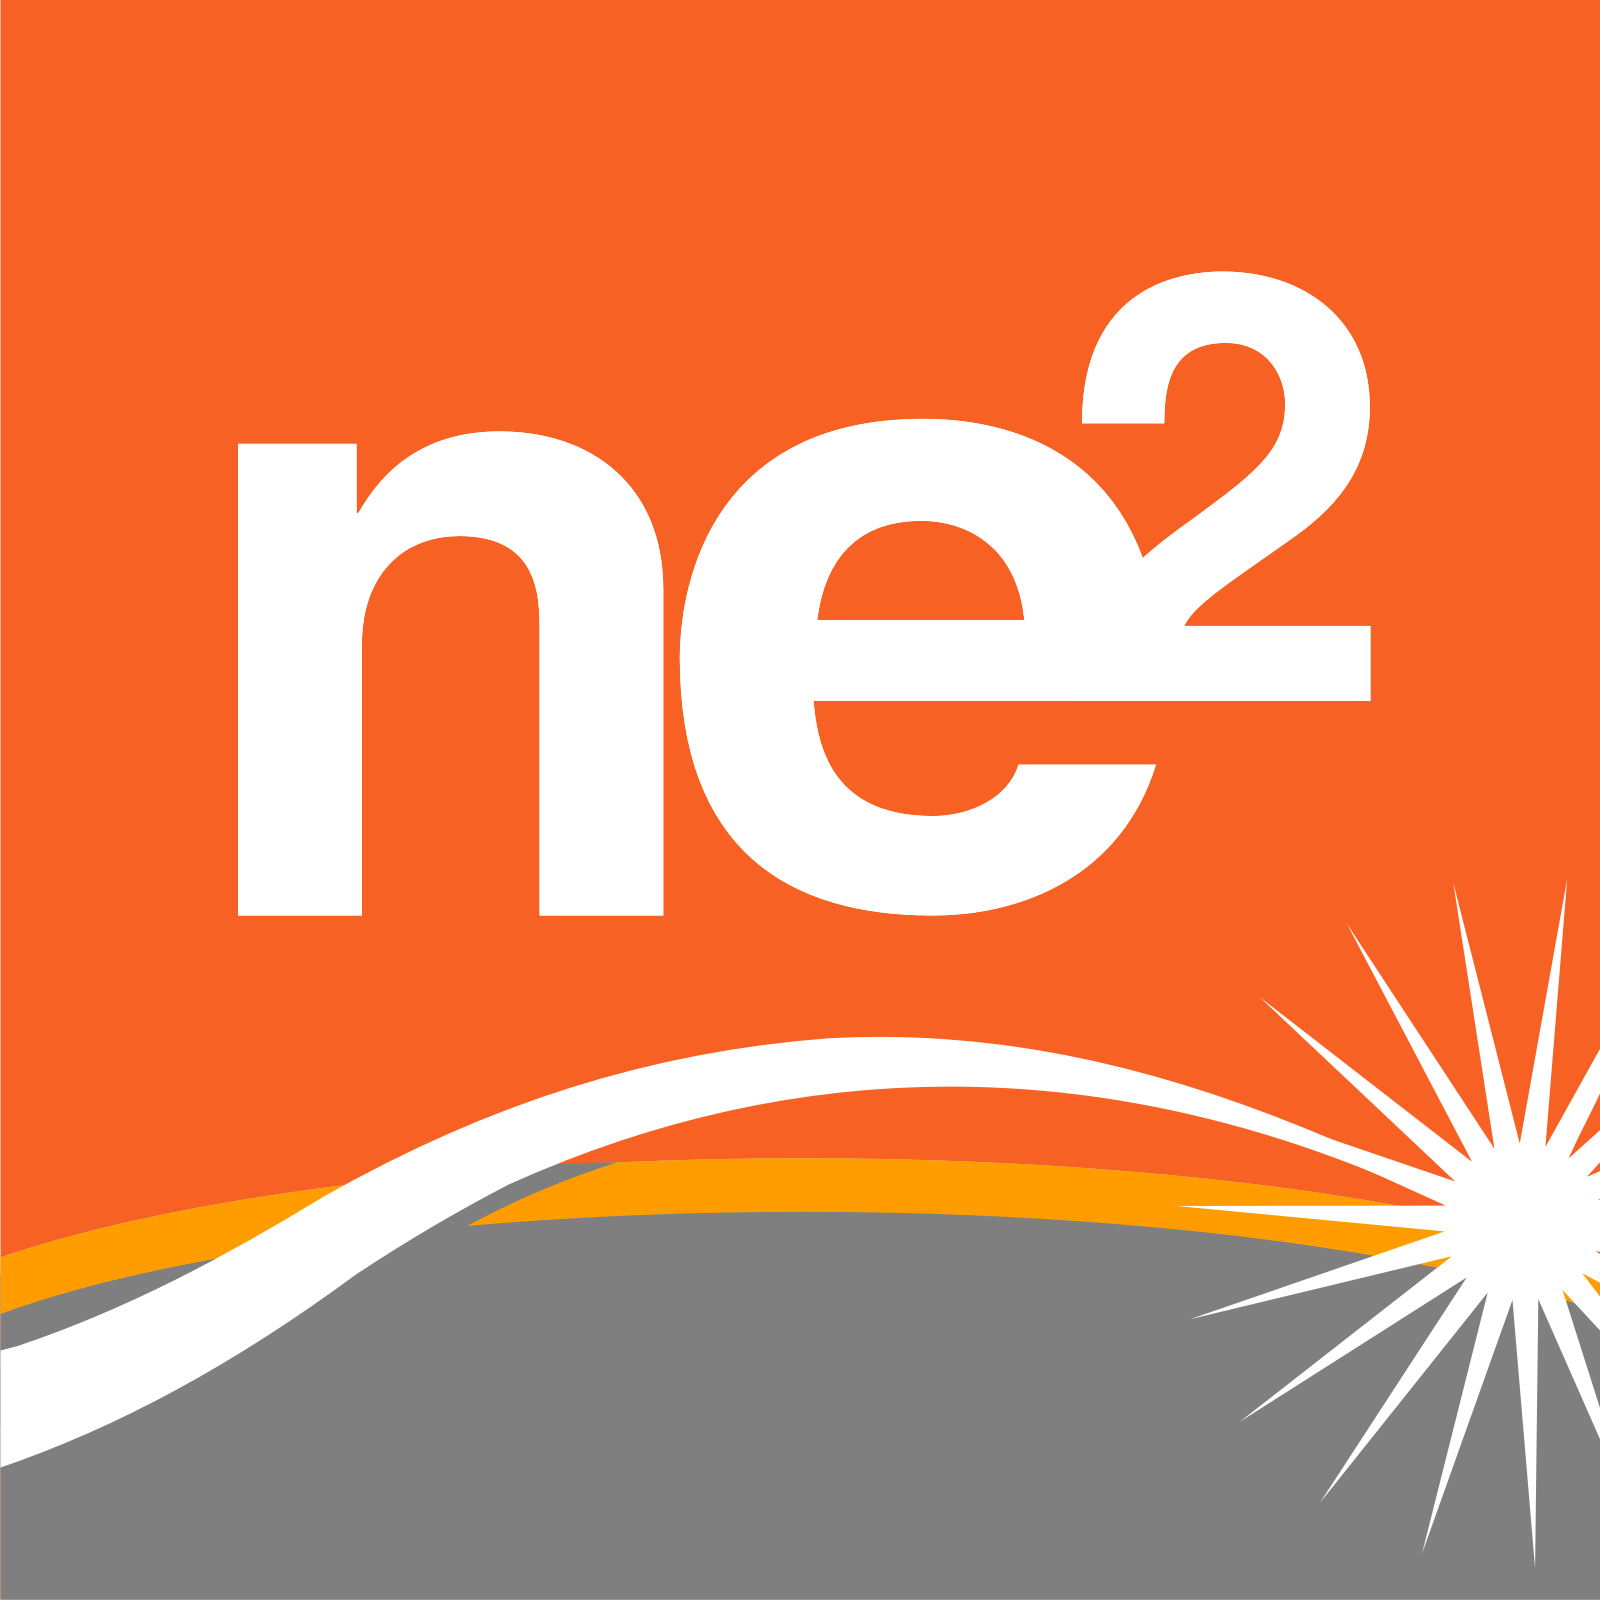 ne2 Orange Top 1600x1600 600 DPI.png